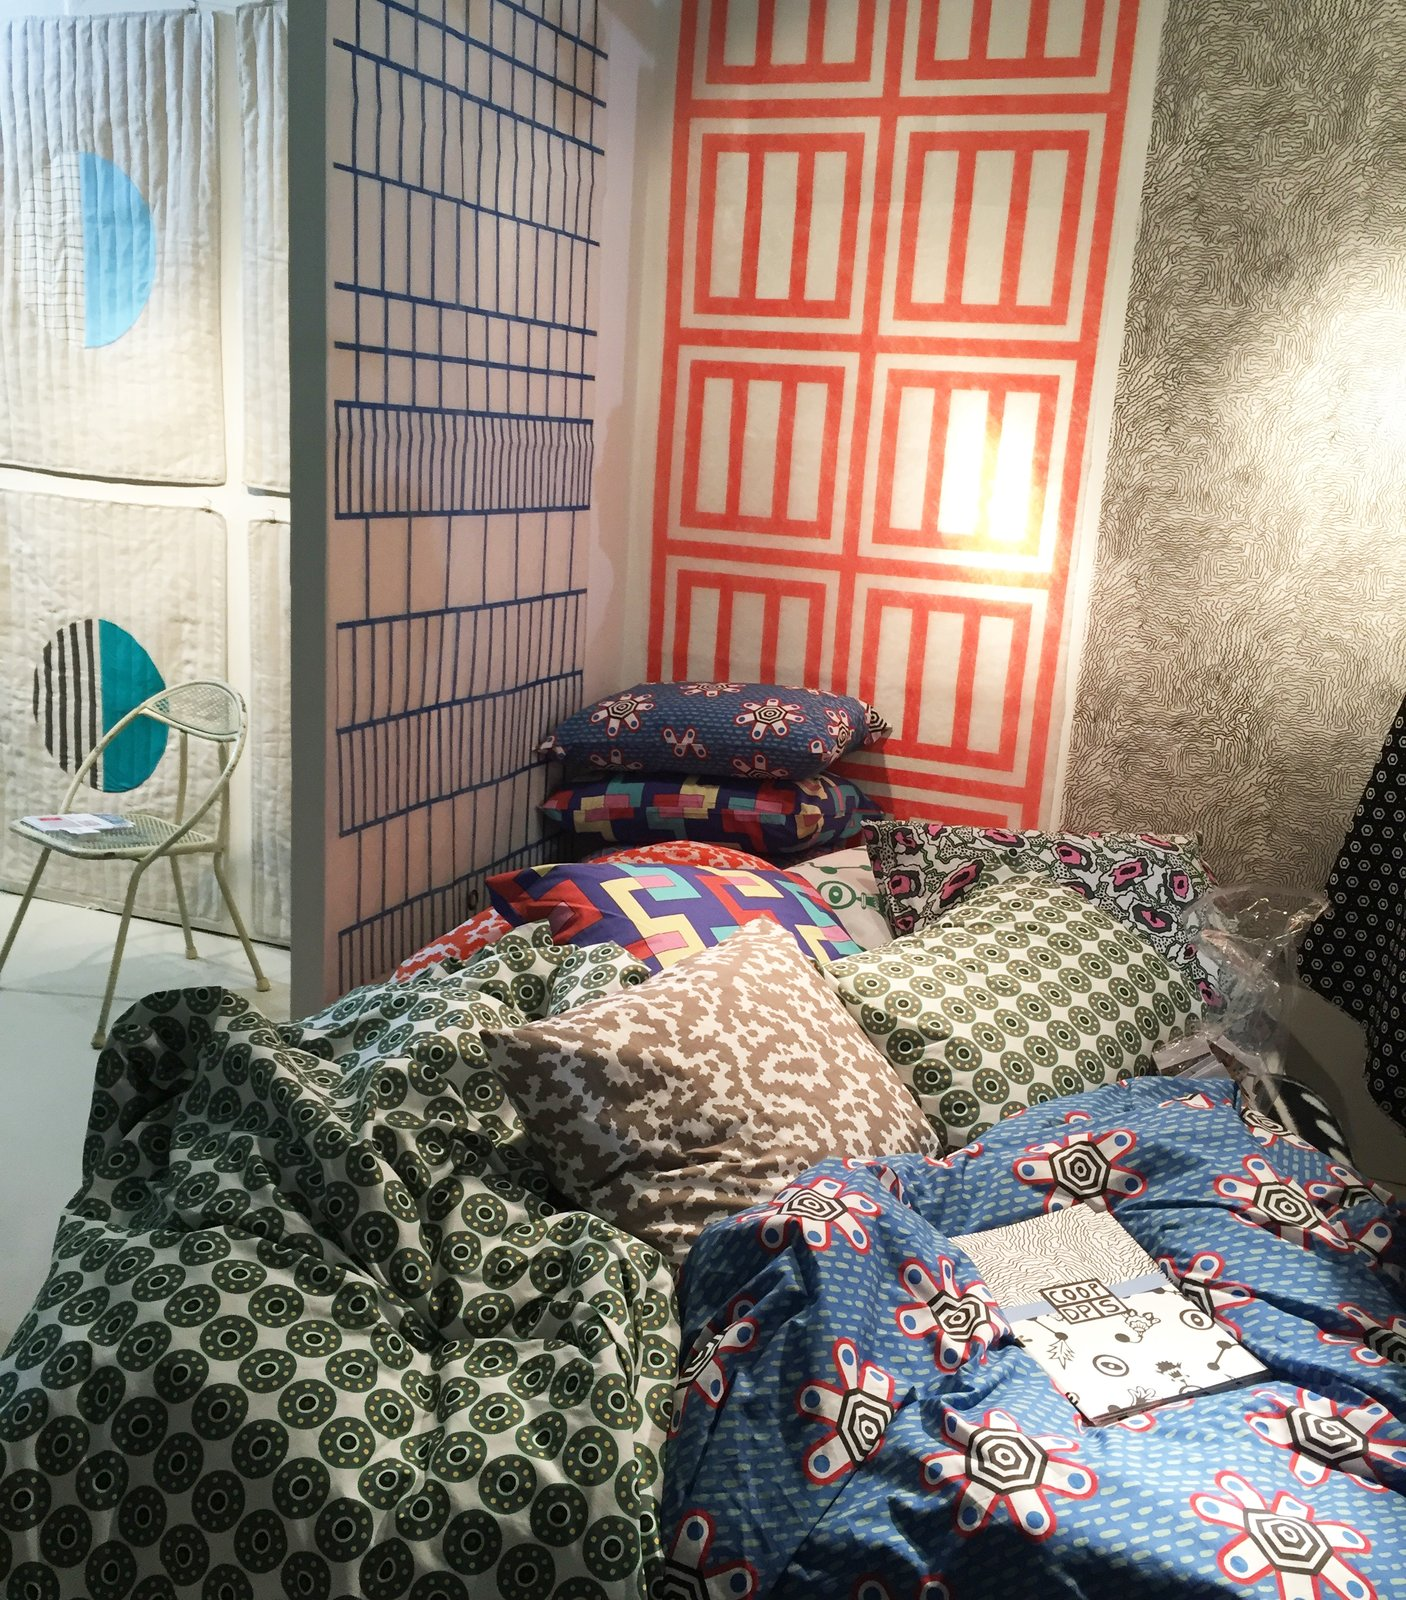 From ZigZag Zurich's colorful booth, the CoopDPS collection of wallpaper, fabric, and bedding was designed by Nathalie Du Pasquier and George Sowden, two of the founding members of the Memphis Design group. #DwellNow #sightunseenoffsite #zigzagzurich #coopdps #memphisdesign #pattern #bedding #wallpaper #color #nathaliedupasquier #georgesowden  Photo 36 of 42 in Wallpaper That Fixes Walls